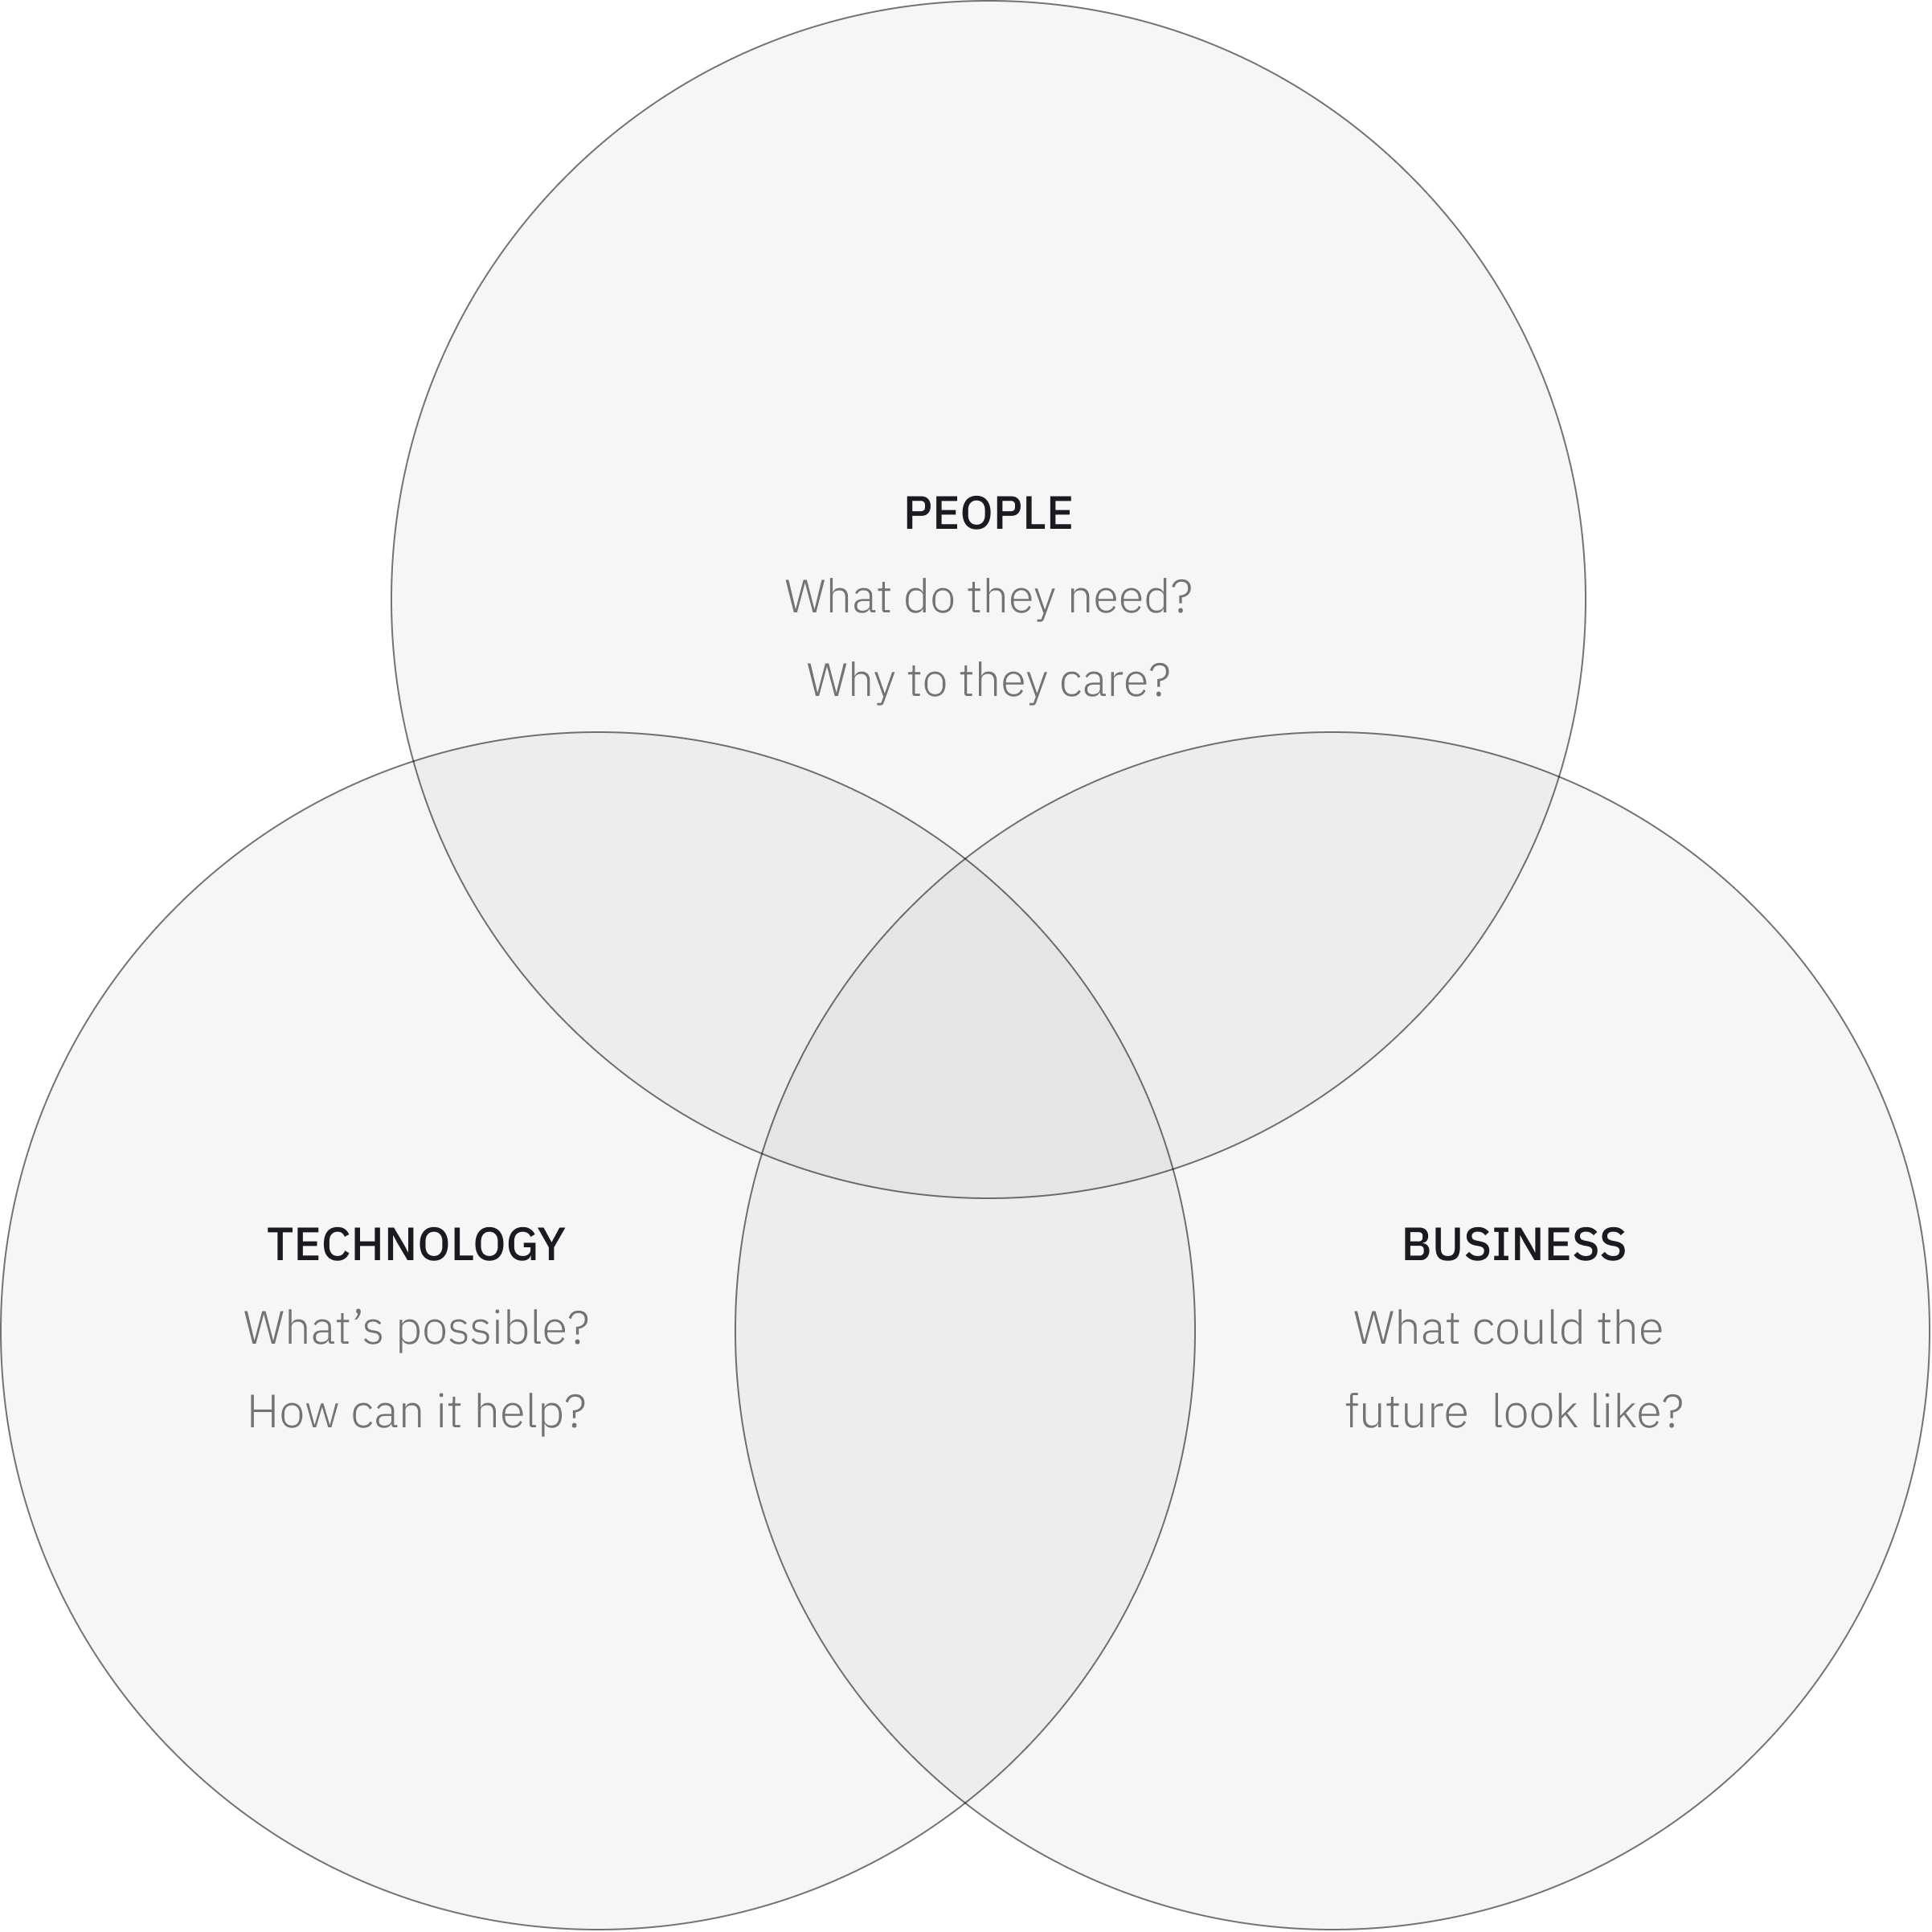 Venn diagram depicting the 3 parts of design thinking: People, Business, and Technology